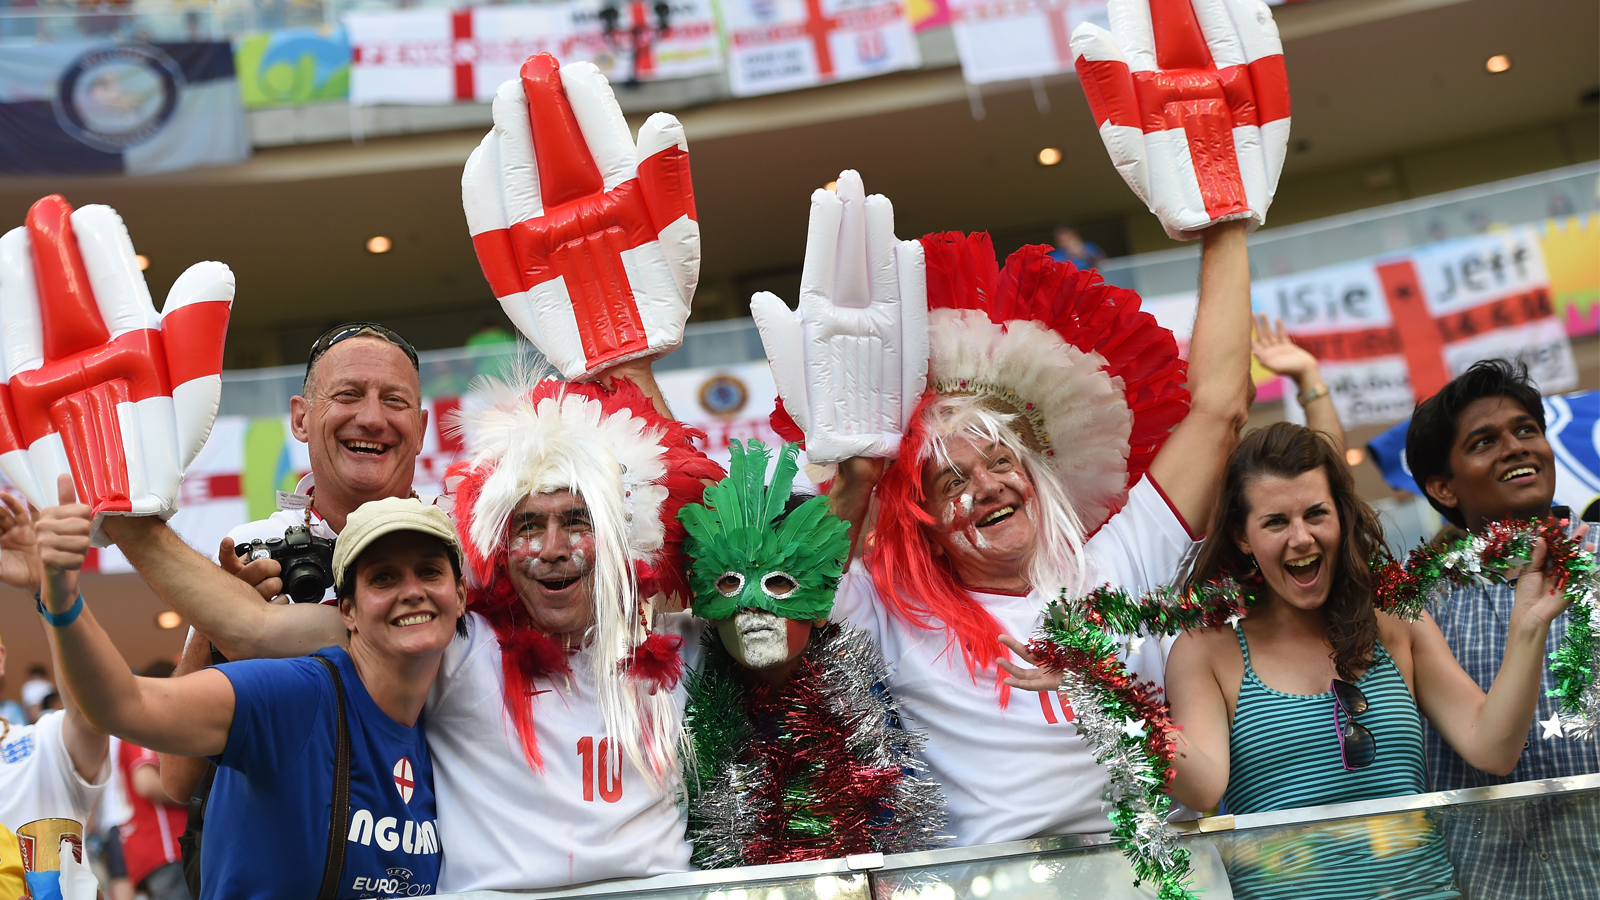 London England Supporters Club Euro 2016 travel and tourism